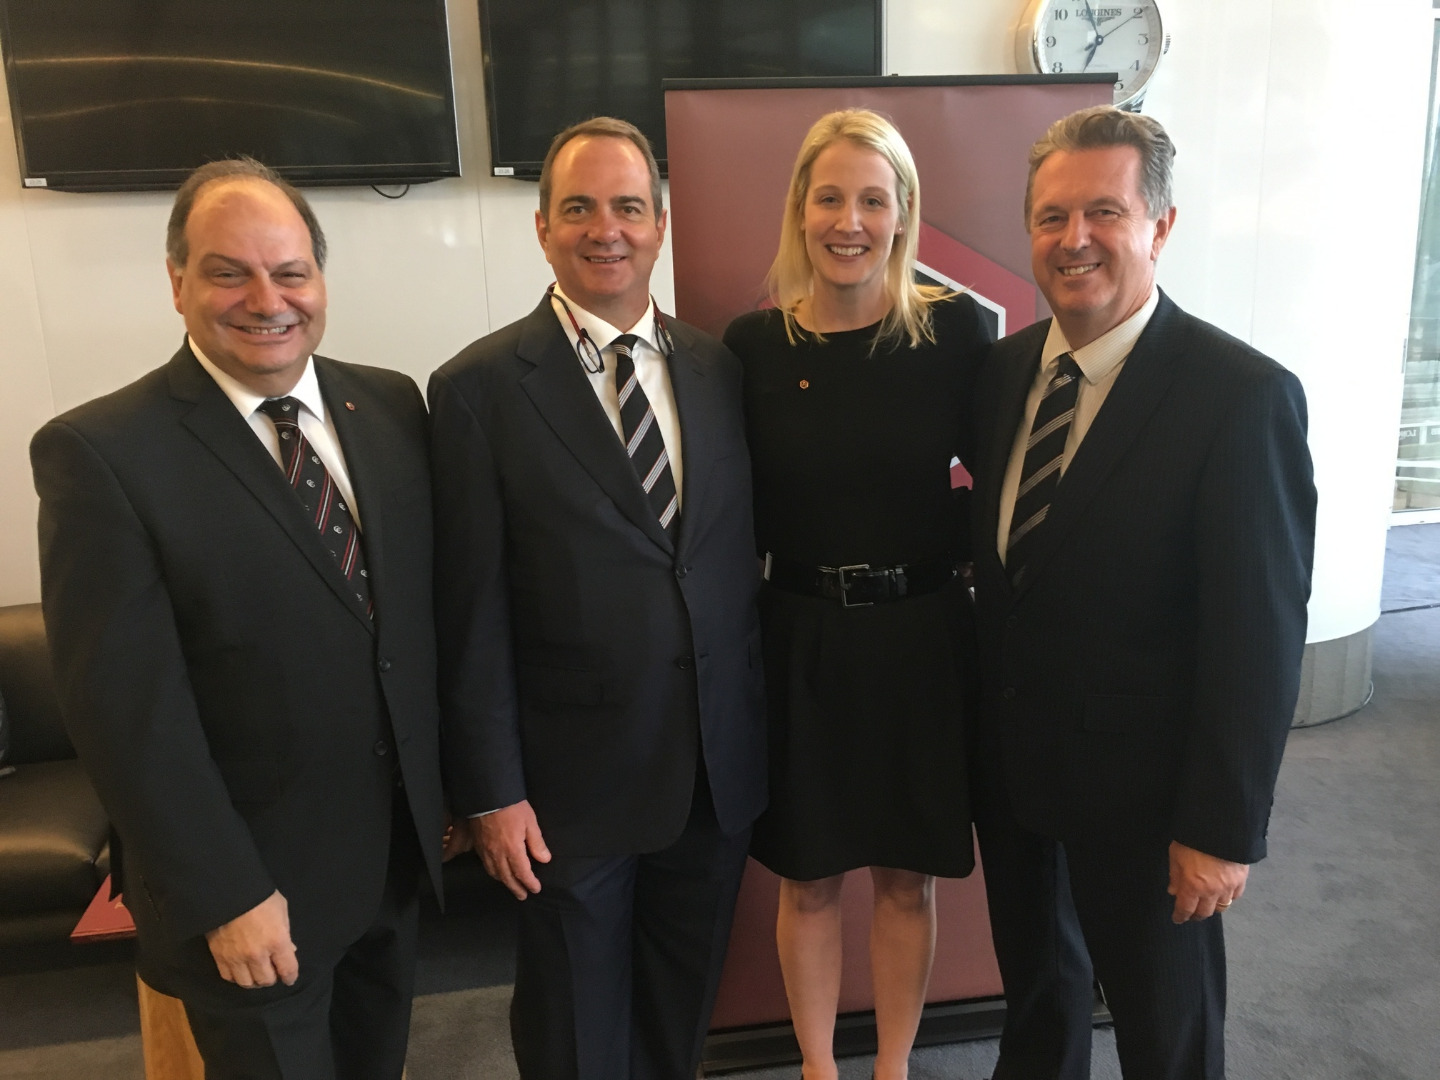 Chairman Michael Crismale with new Members John Ingham, Kirsten Thomsen, Neil Armstrong